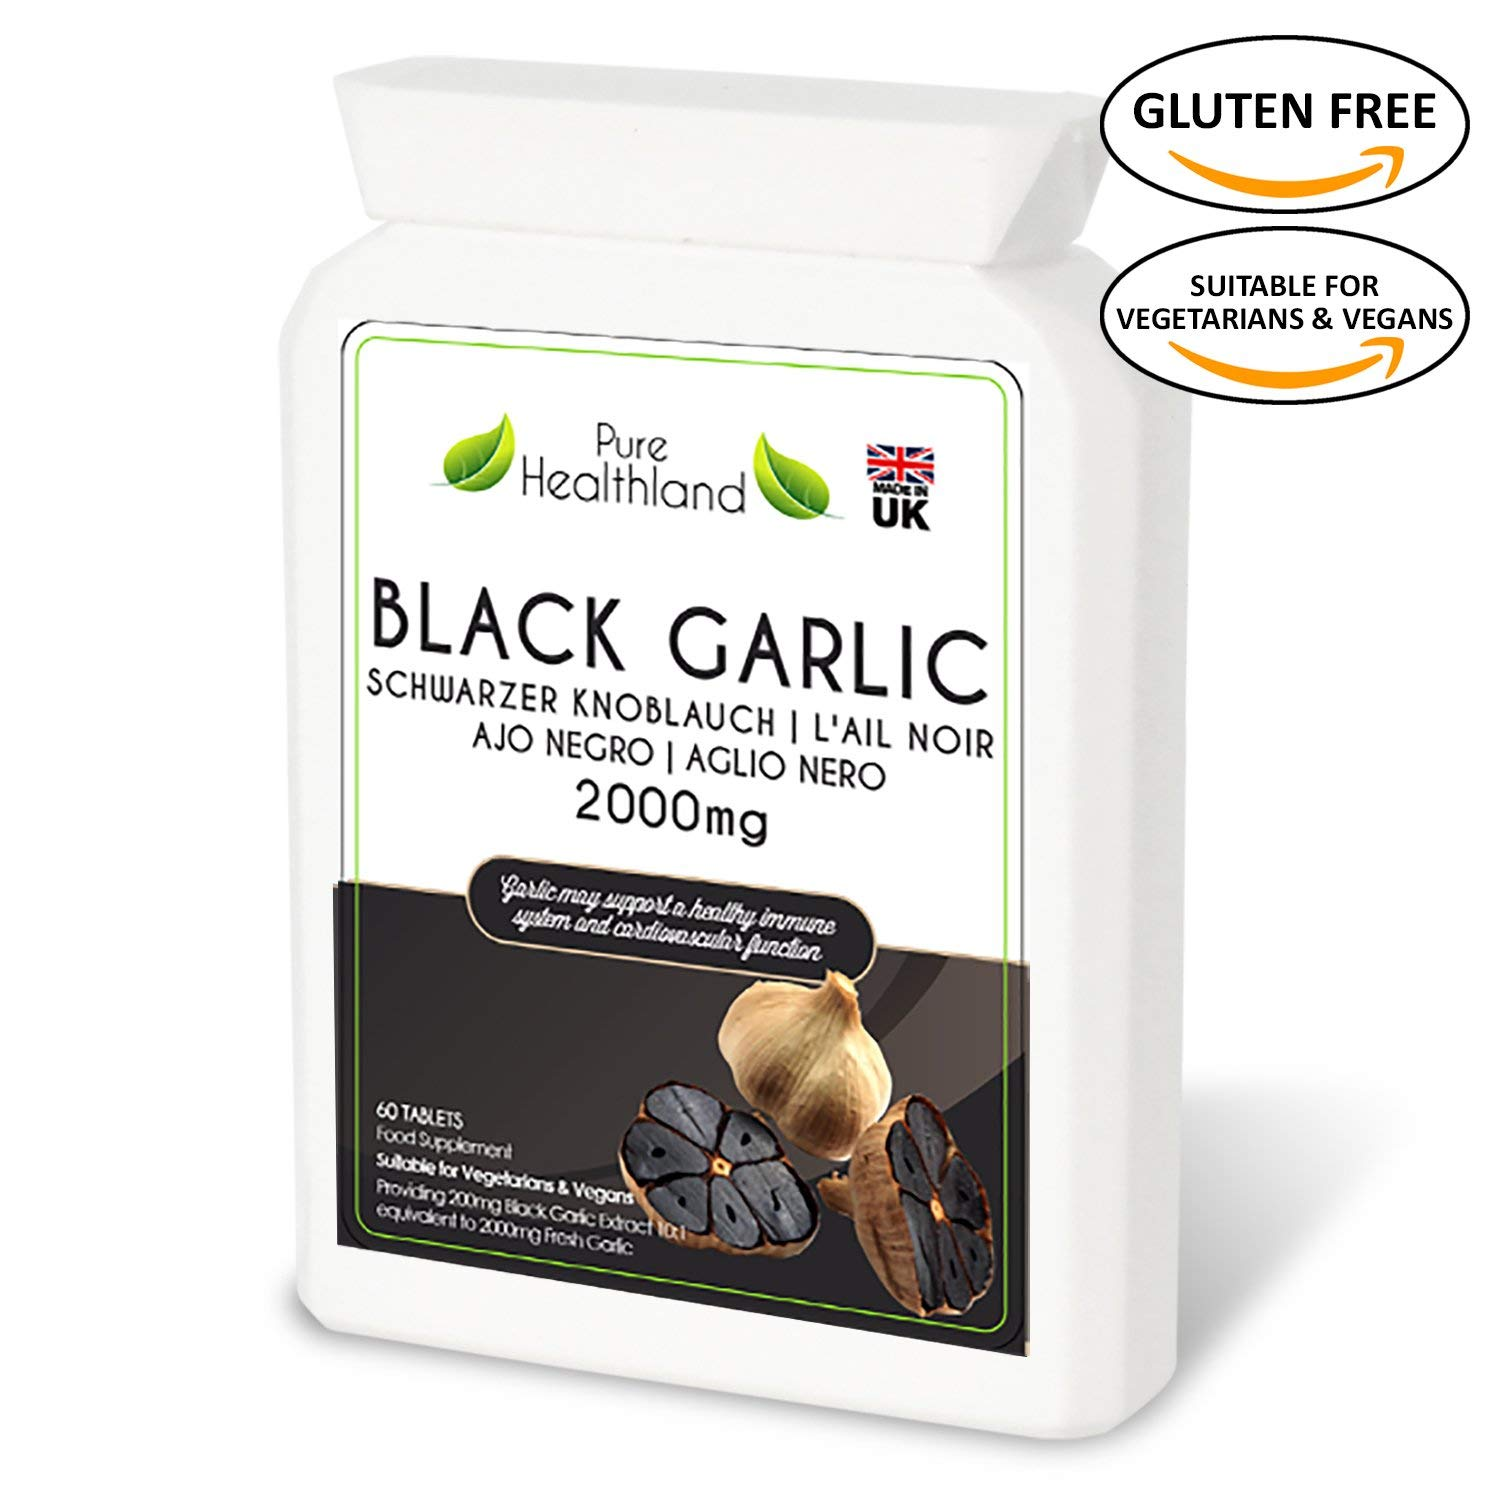 Pure Healthland Black Garlic